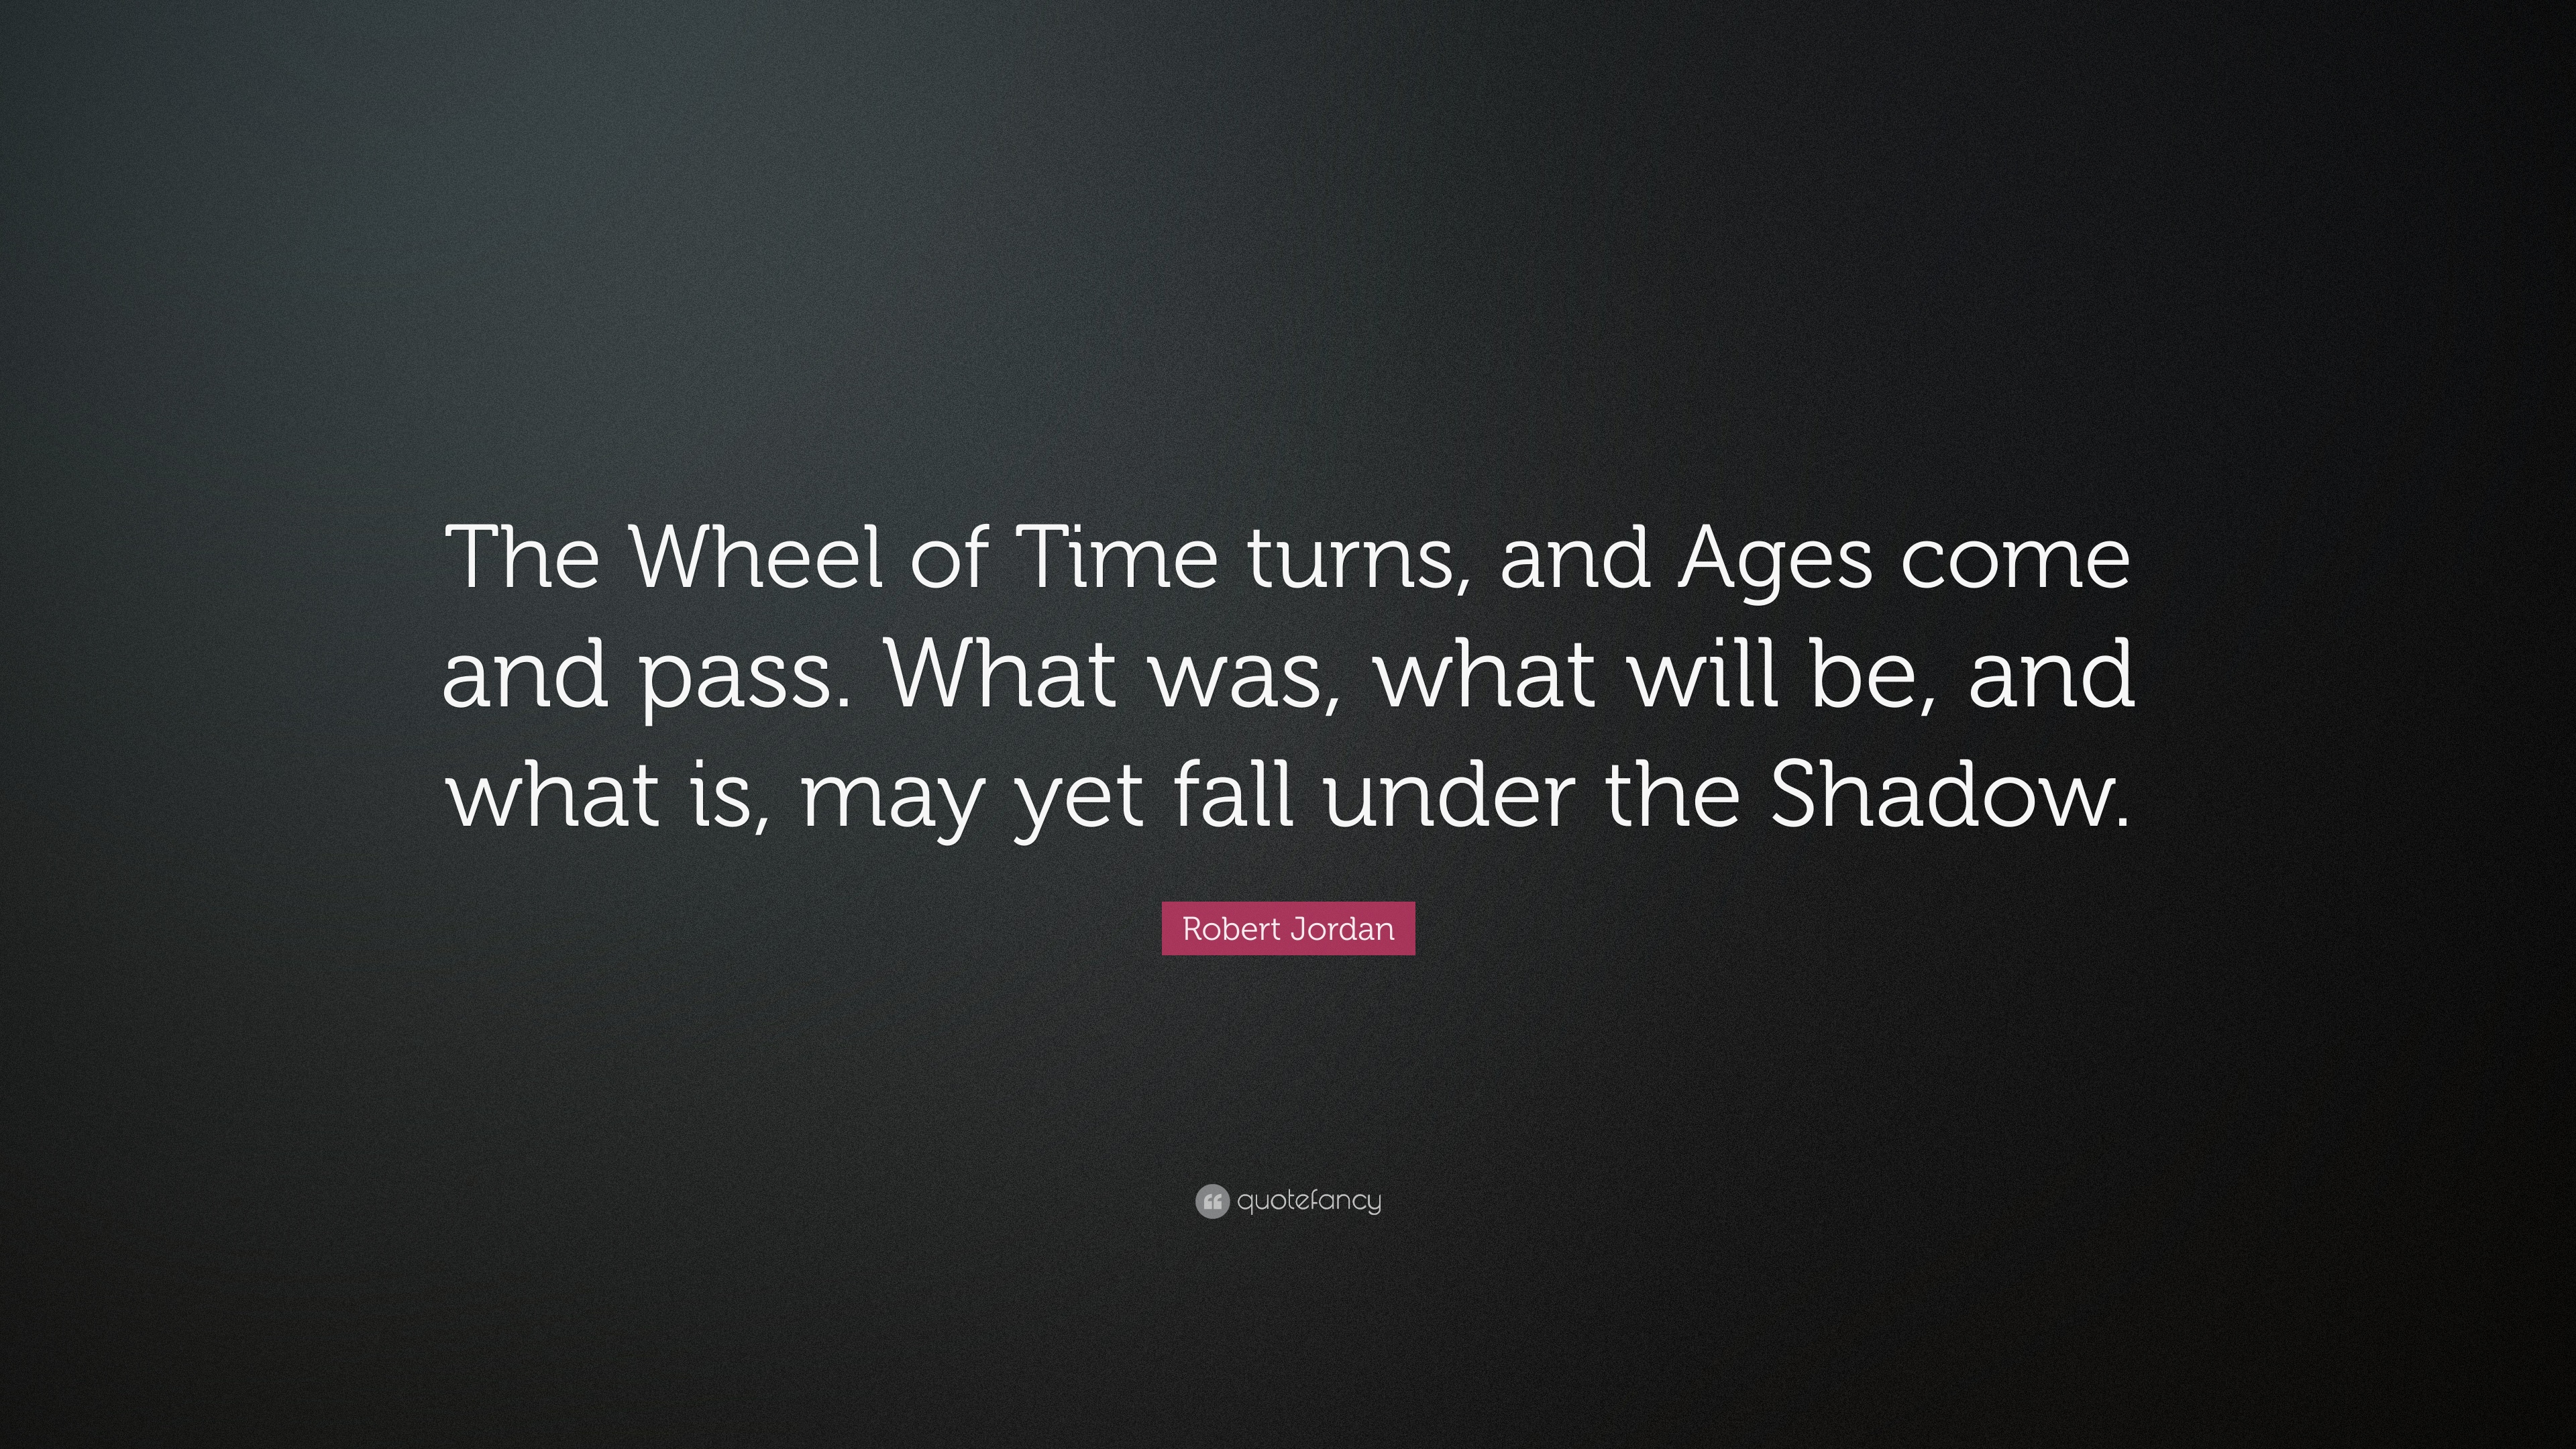 Robert Jordan Quote The Wheel Of Time Turns And Ages Come And